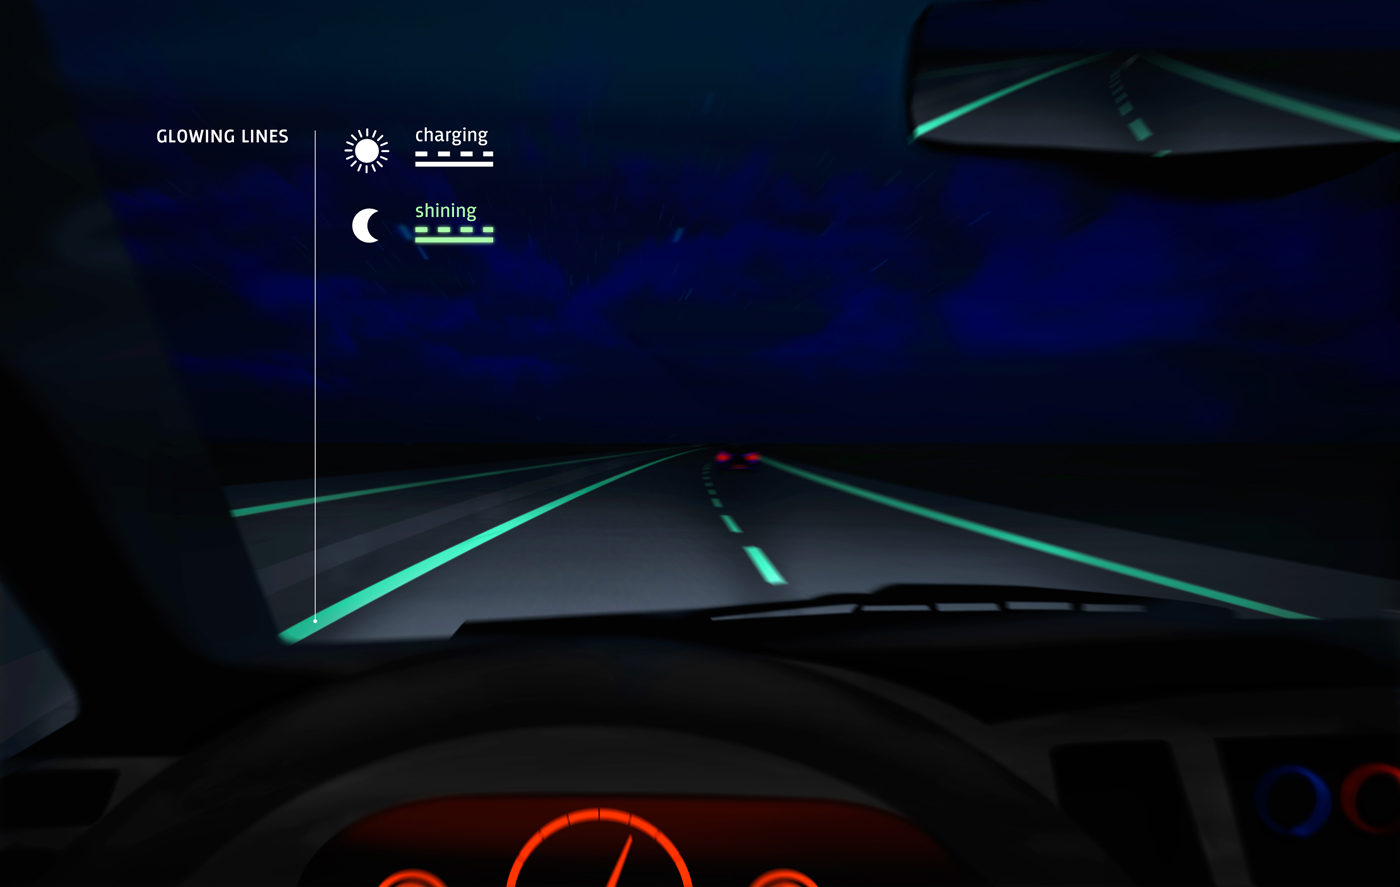 File:Glowing lines of smart highway.jpg - Wikimedia Commons